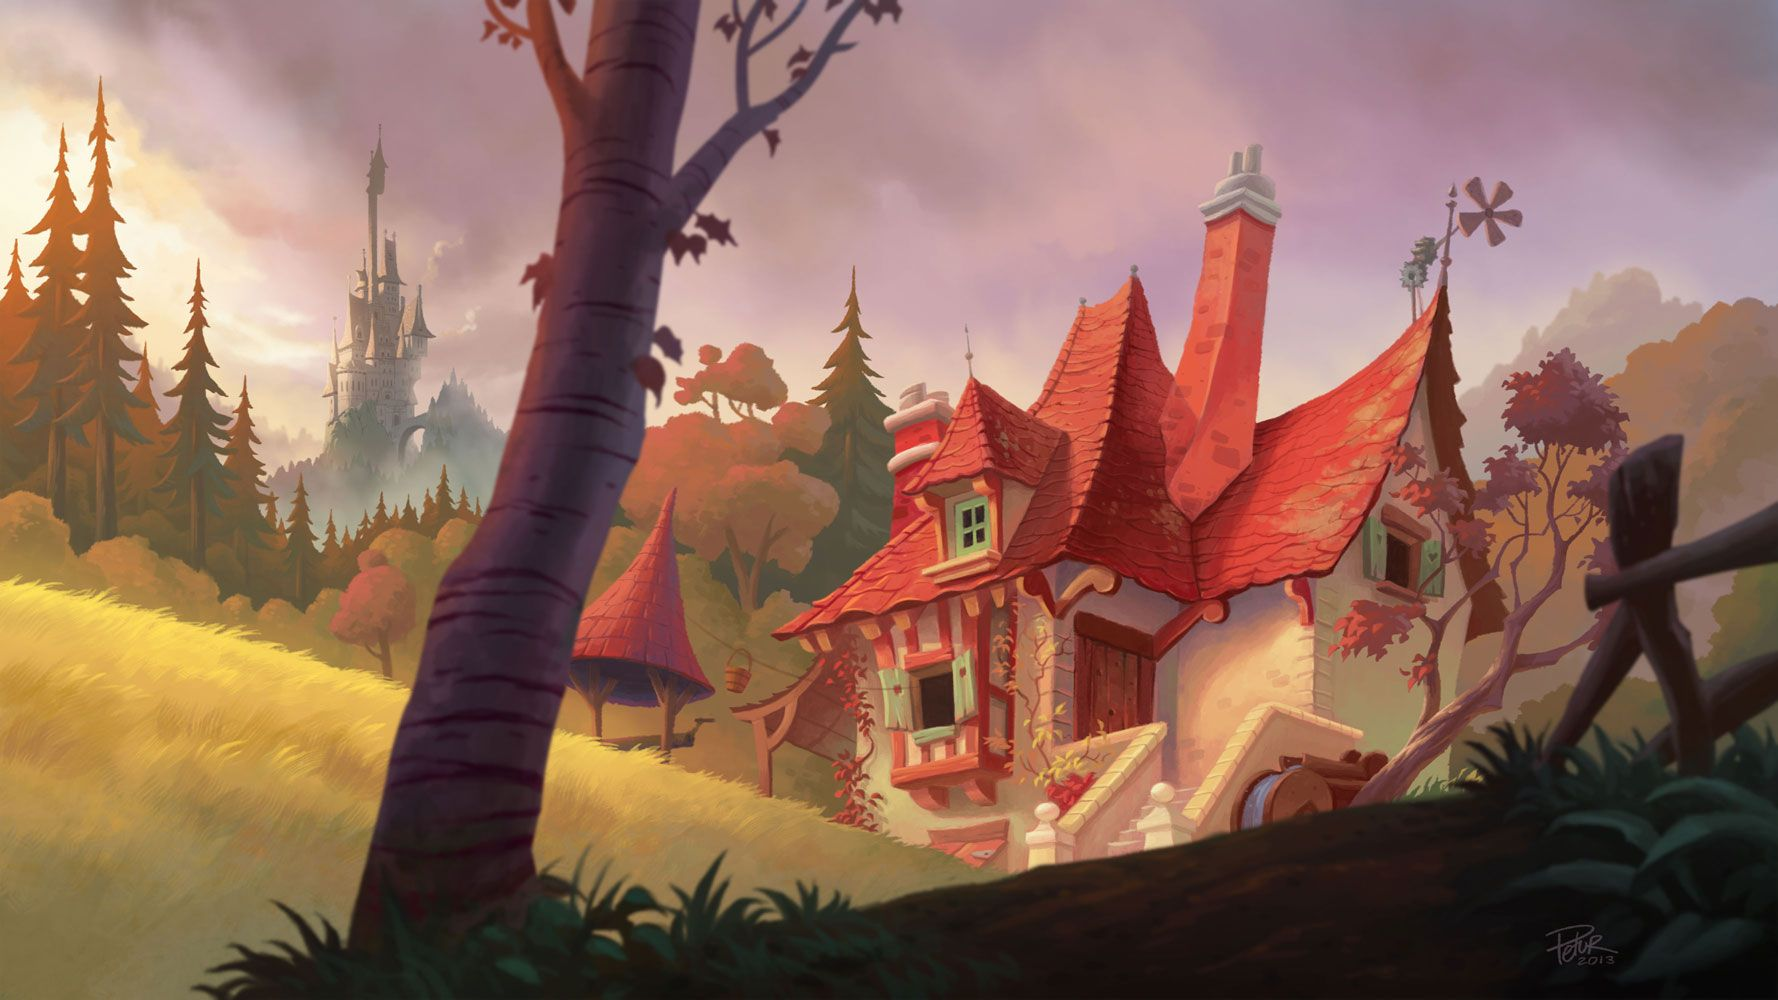 Belle's house by petura on deviantART